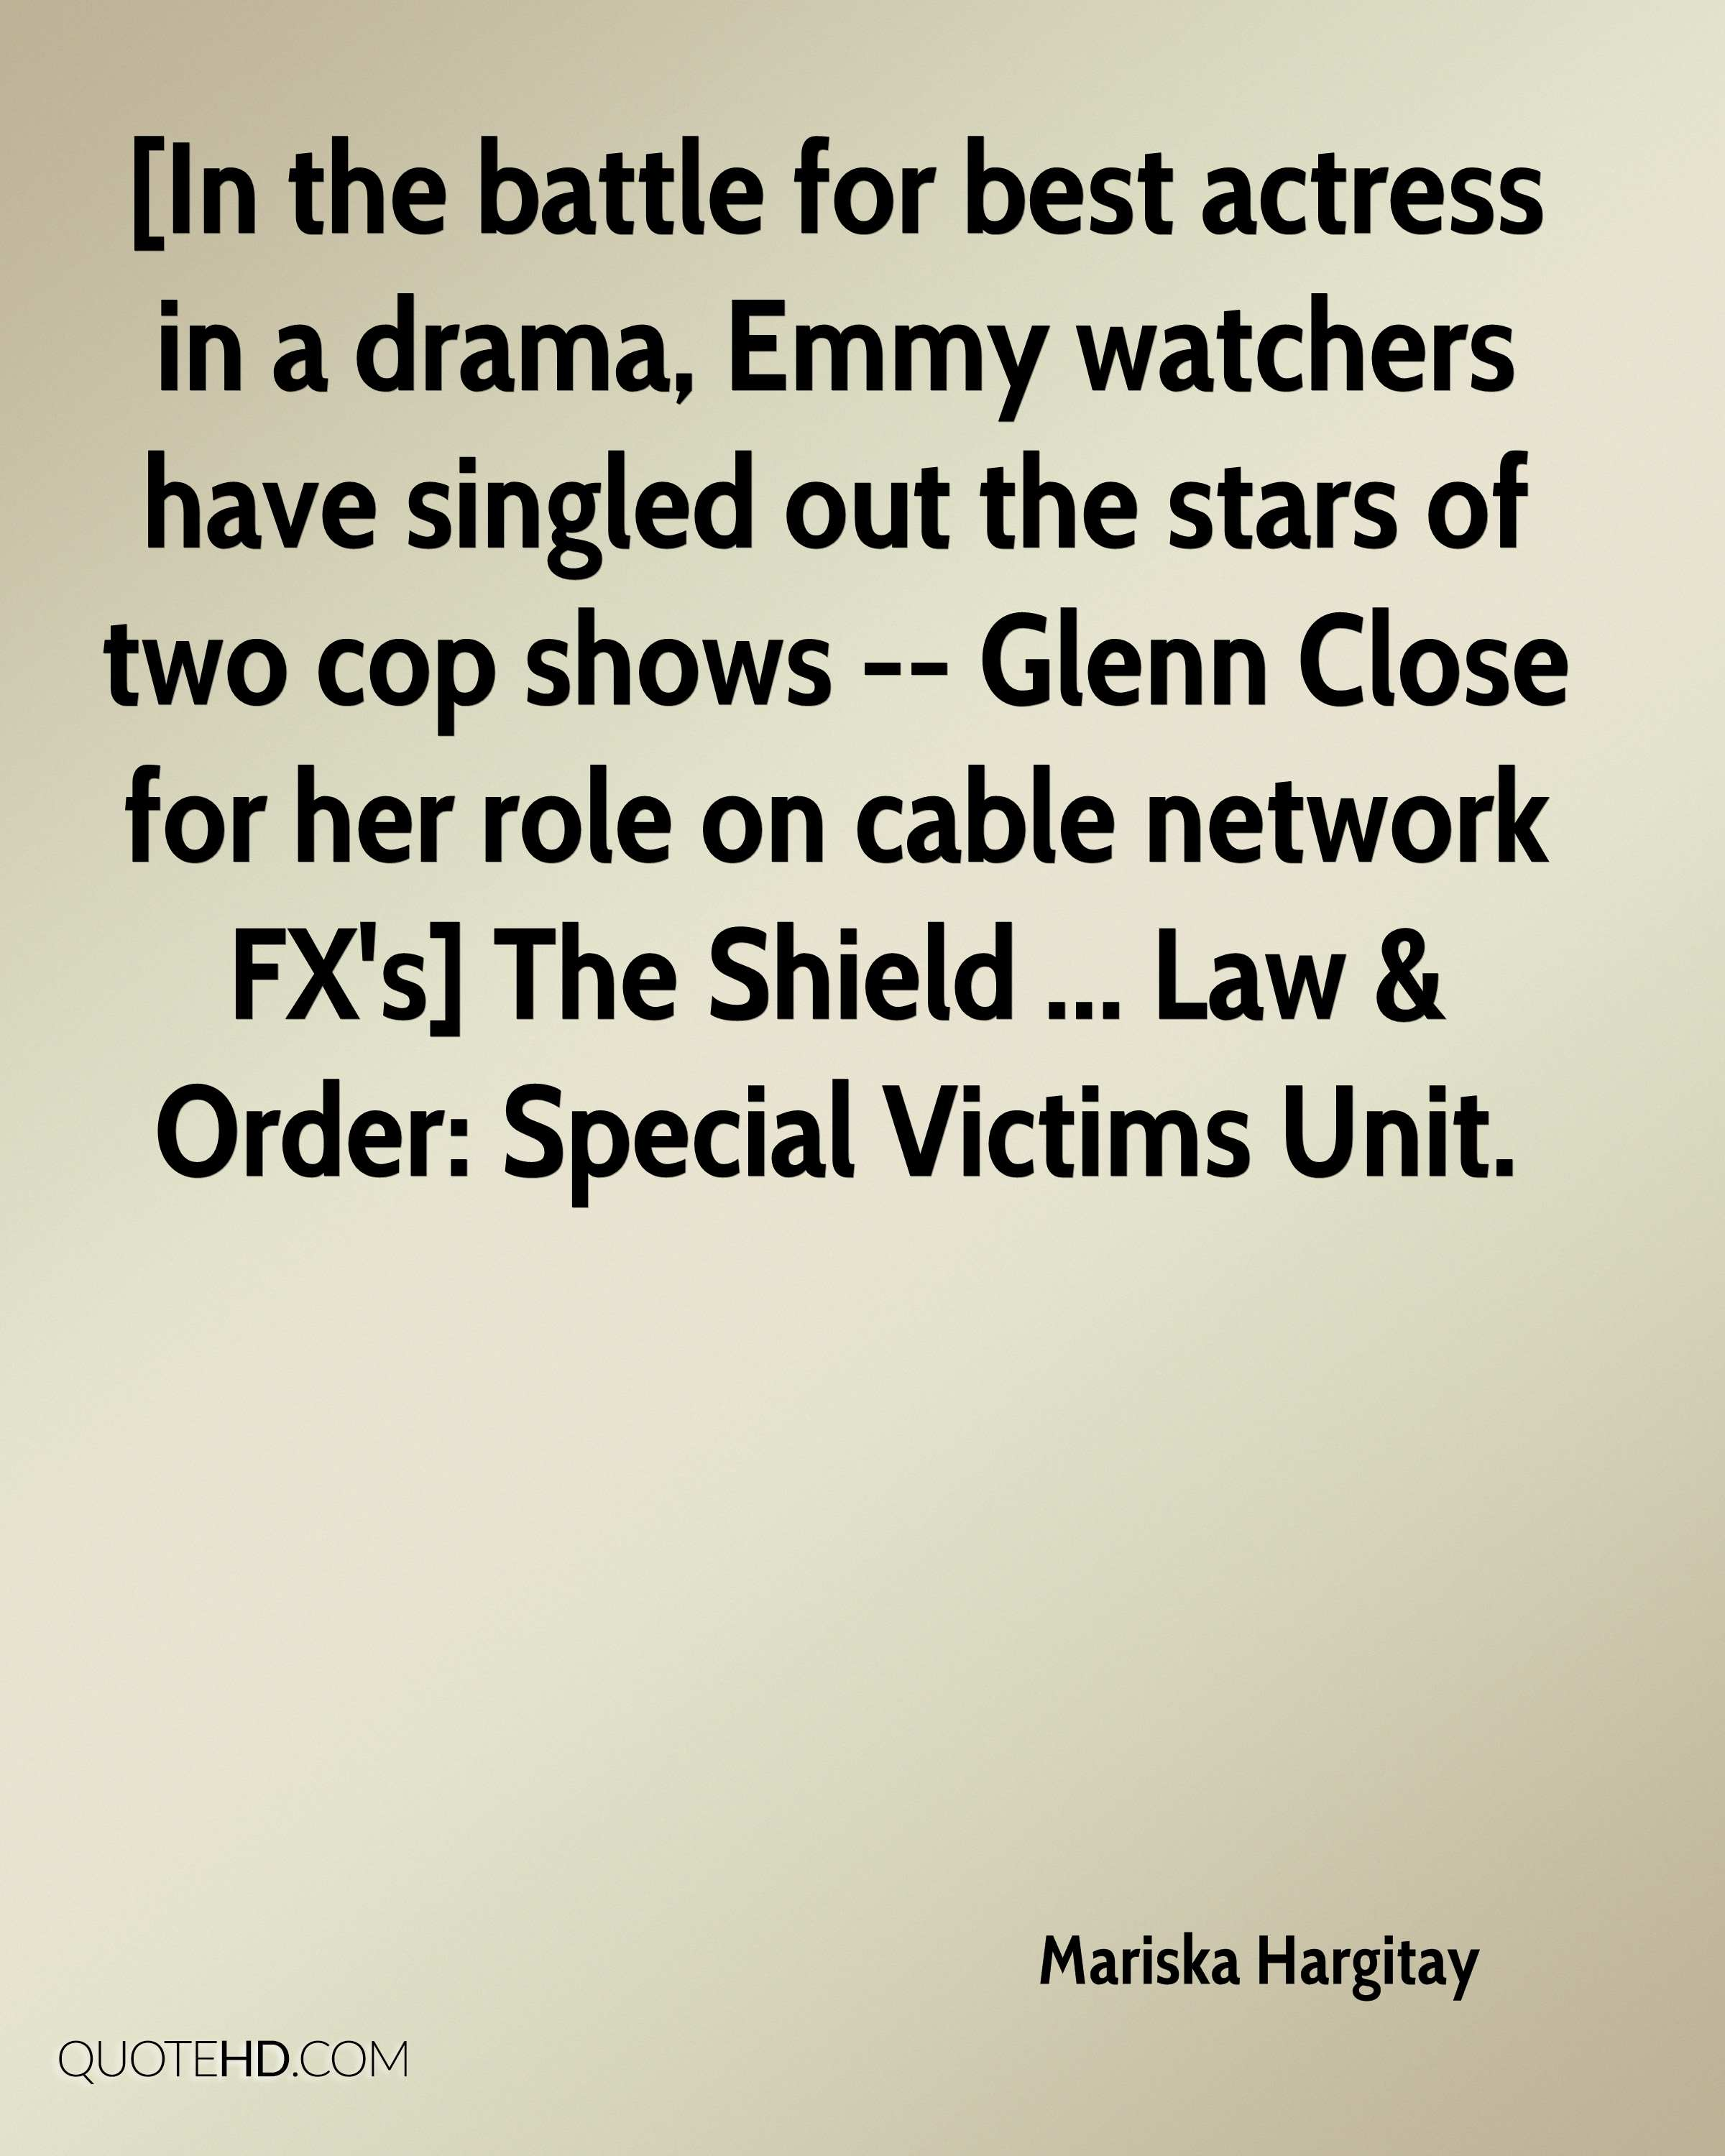 [In the battle for best actress in a drama, Emmy watchers have singled out the stars of two cop shows -- Glenn Close for her role on cable network FX's] The Shield ... Law & Order: Special Victims Unit.